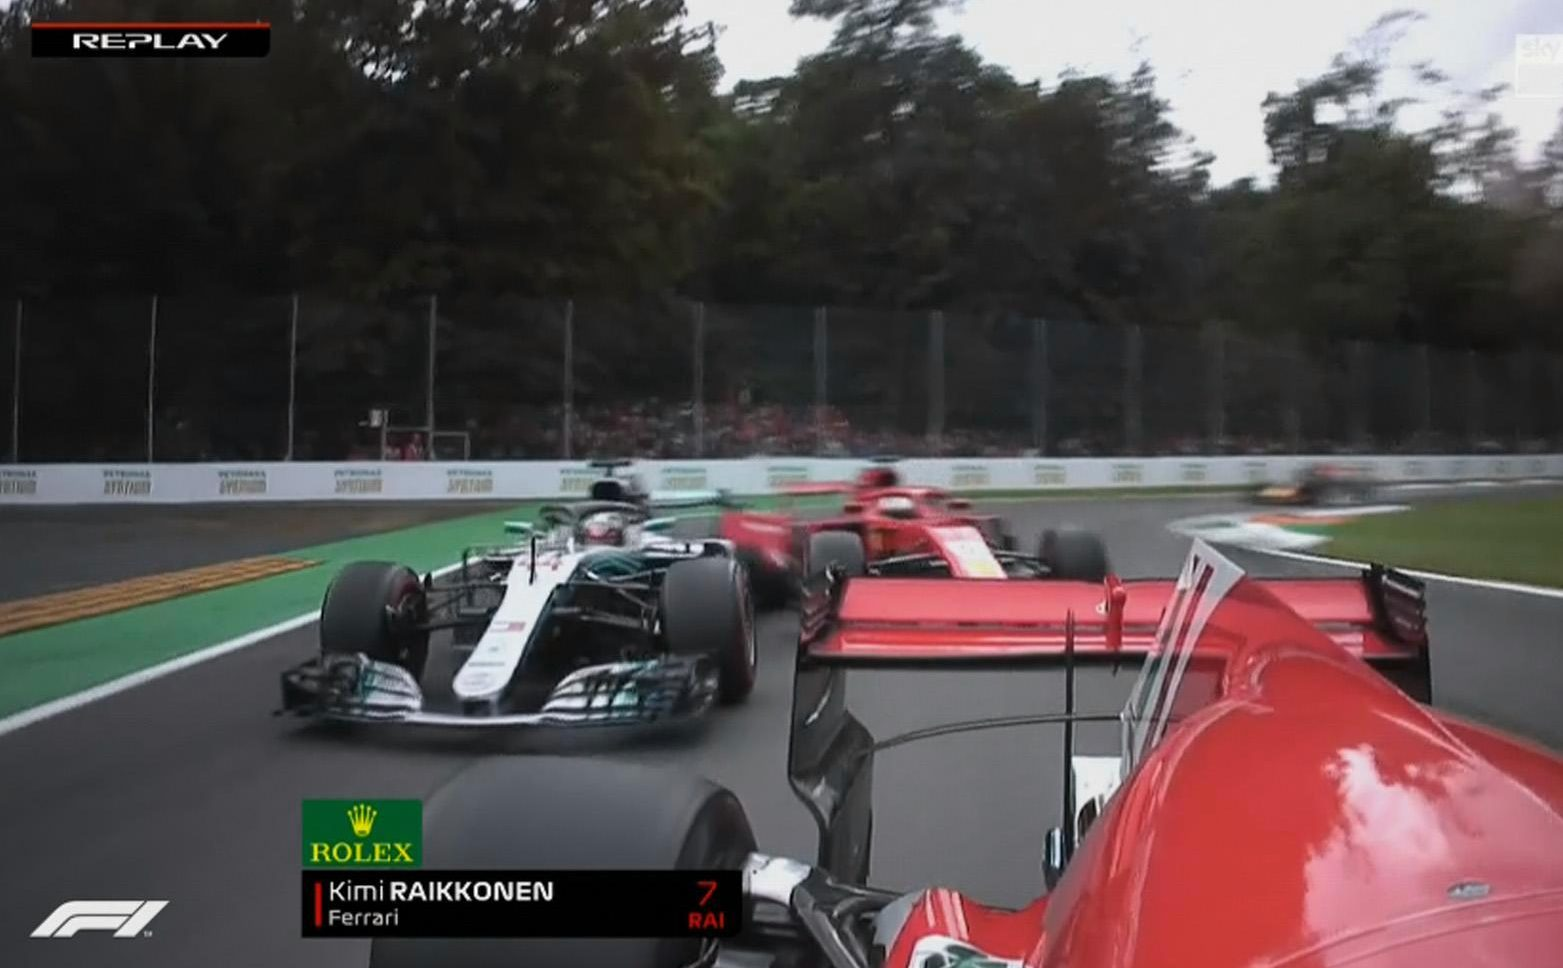 Vettel starts to spin off after his contact with the Mercedes of Hamilton